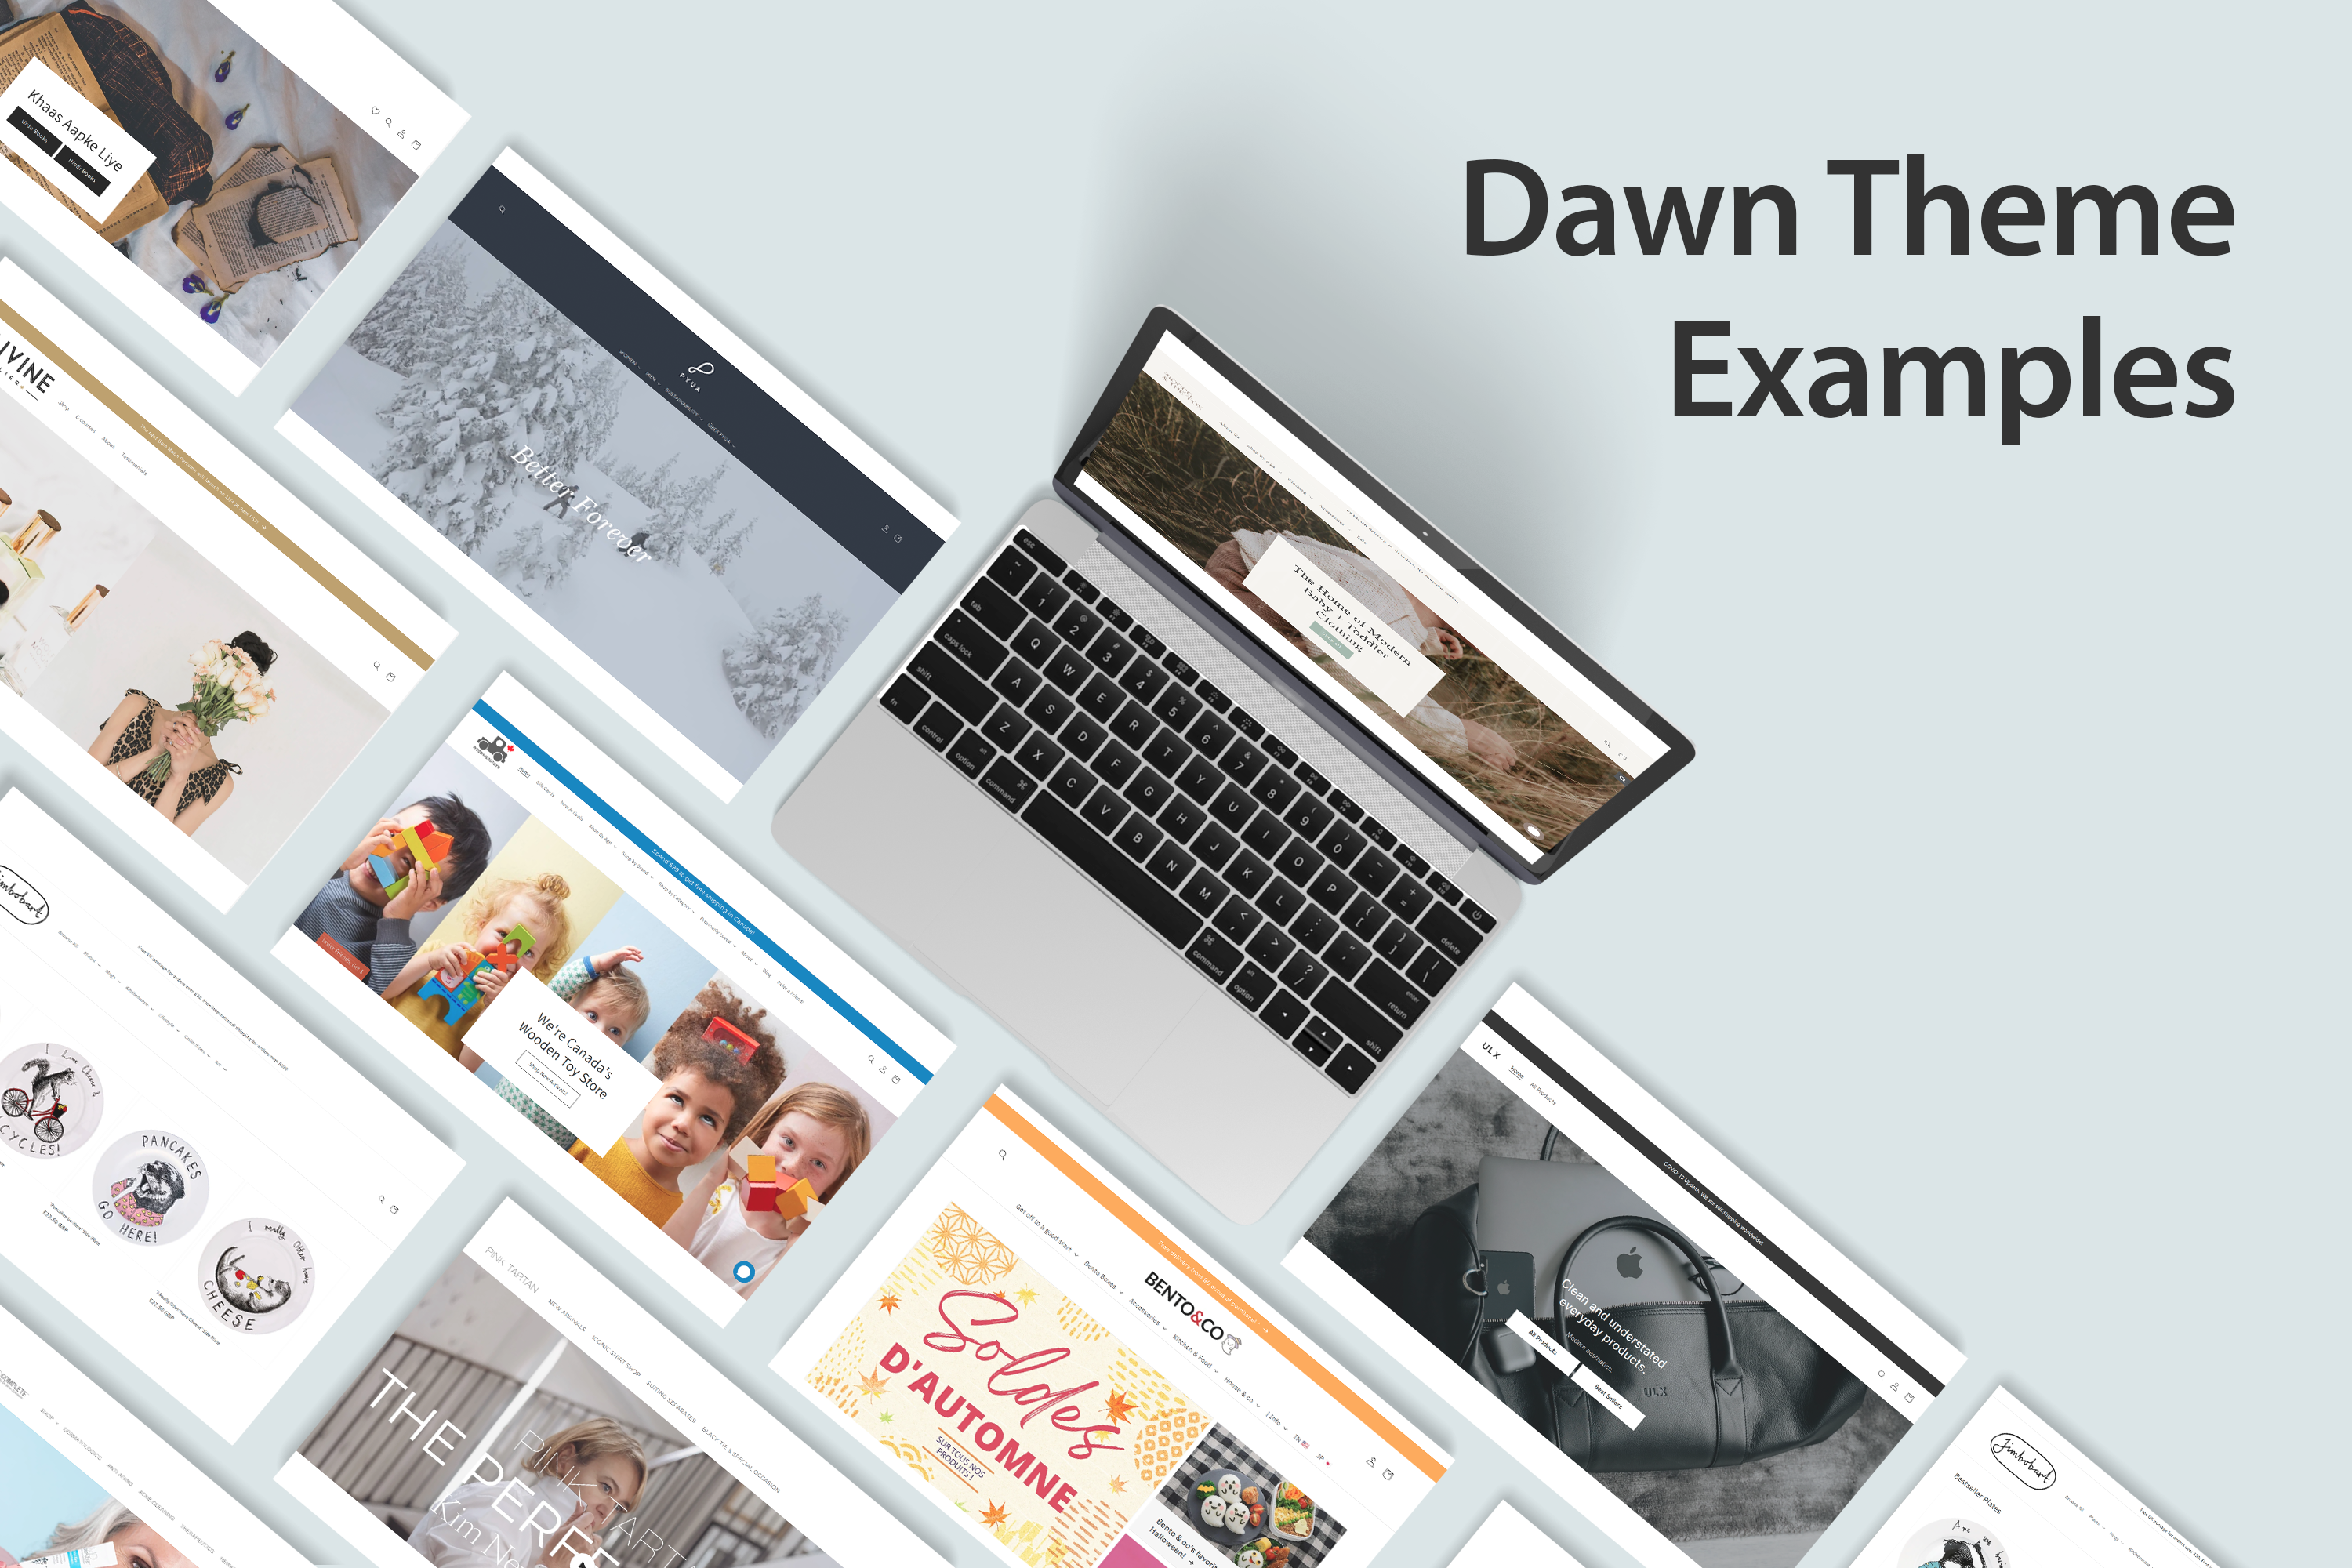 shopify-dawn-theme-examples-banner